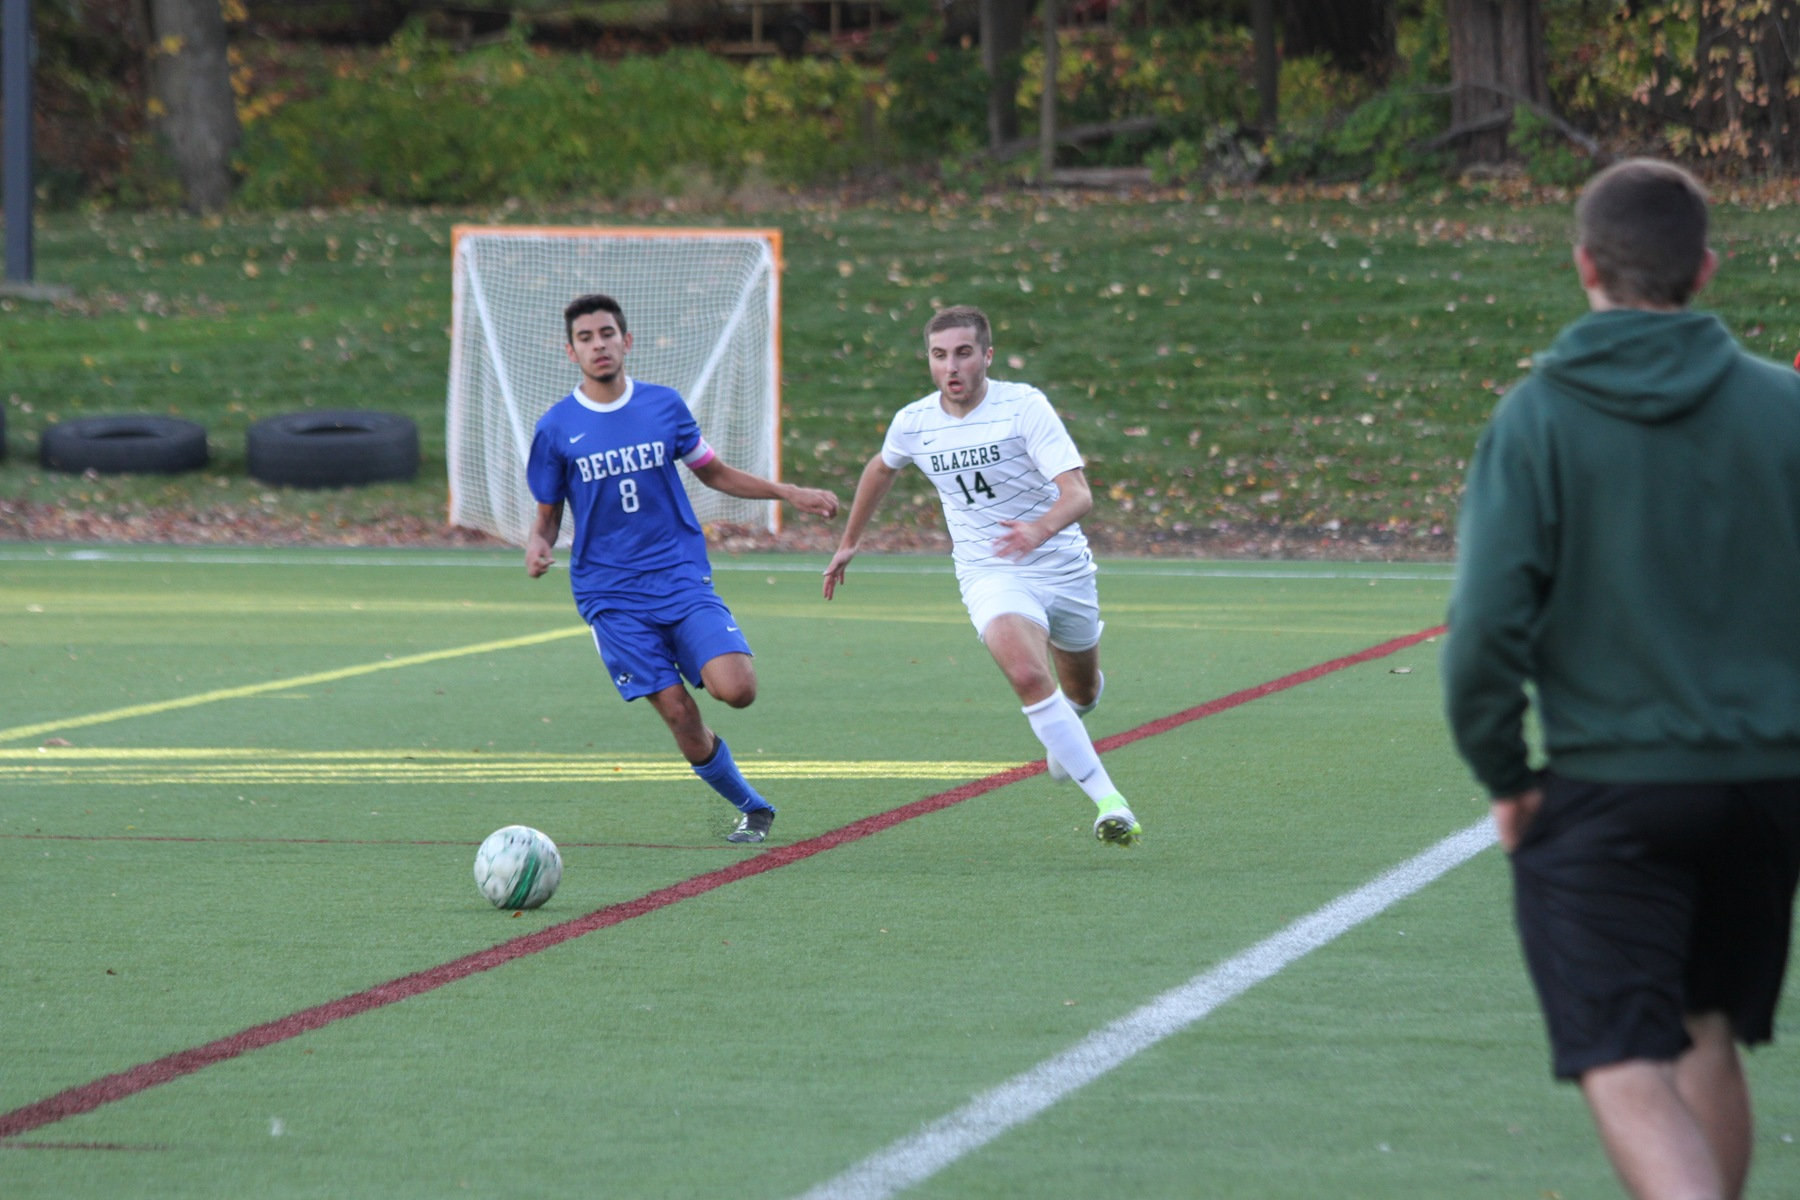 Elms Advances To NECC Semifinals With 3-0 Win Over Becker